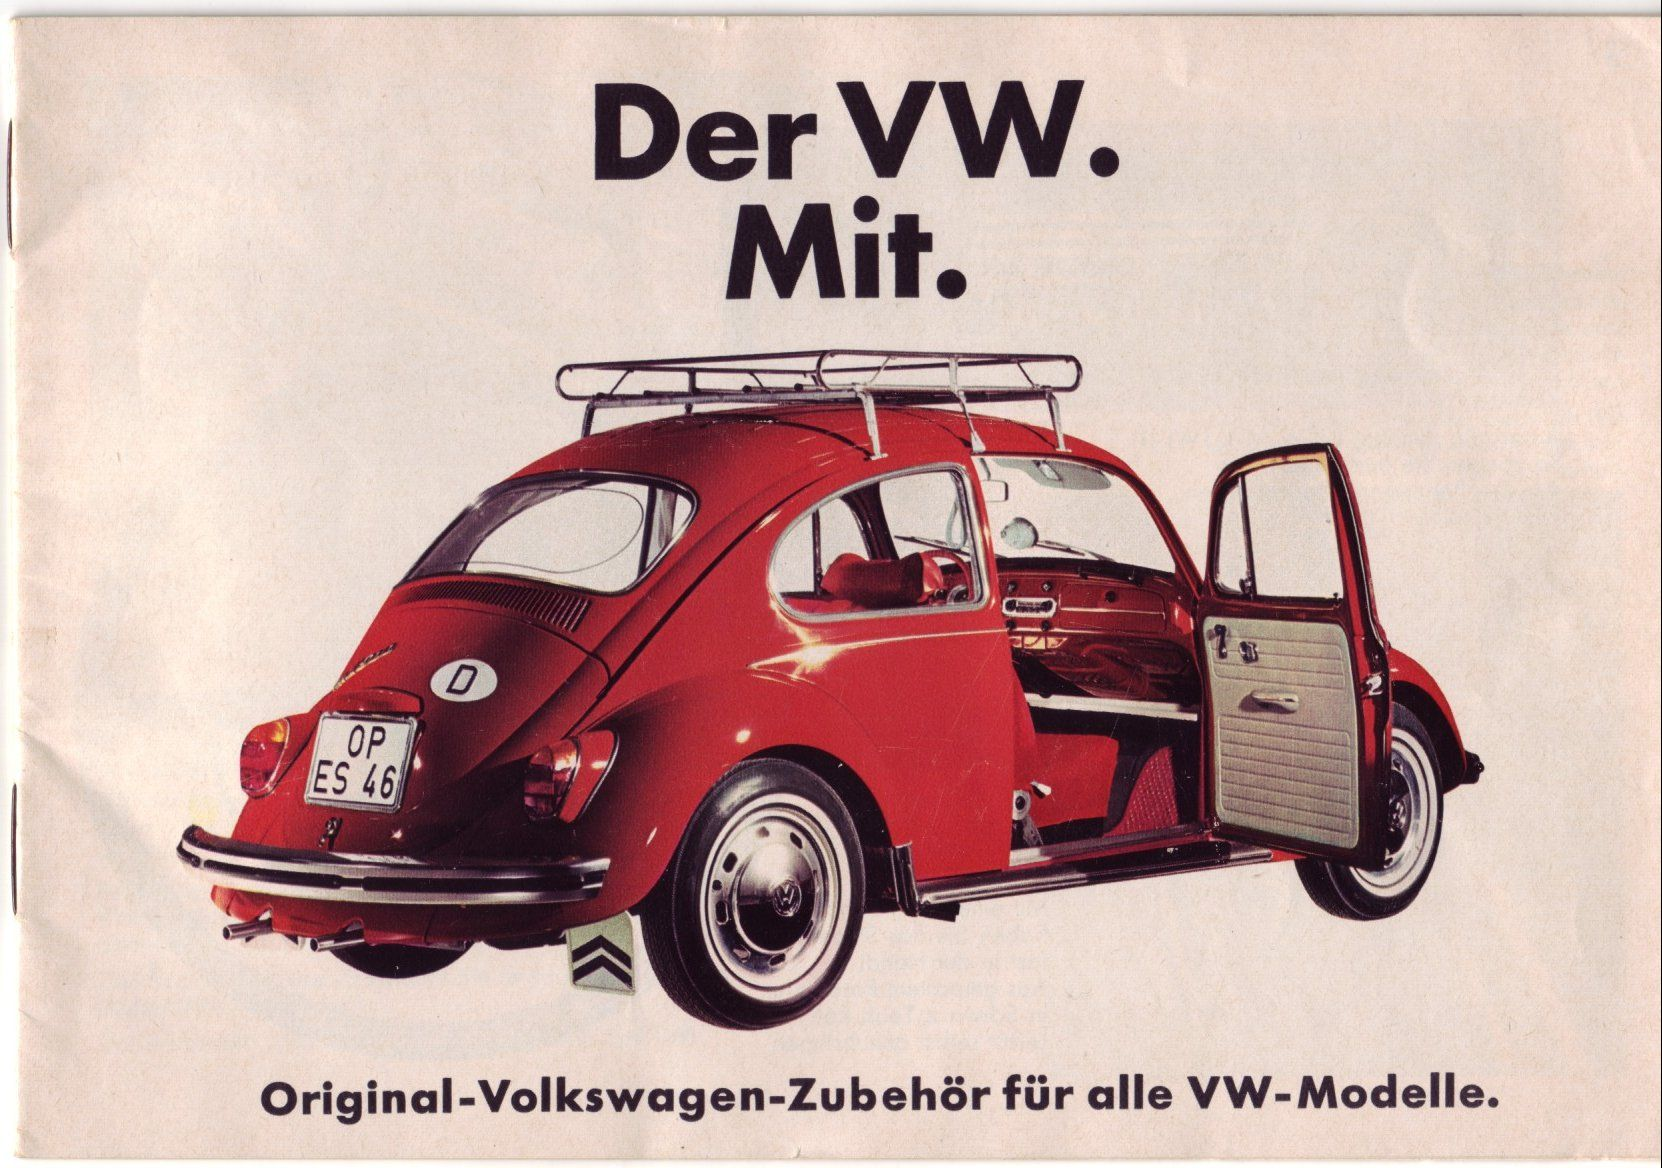 1969 German accessory catalog Volkswagen, Anuncios